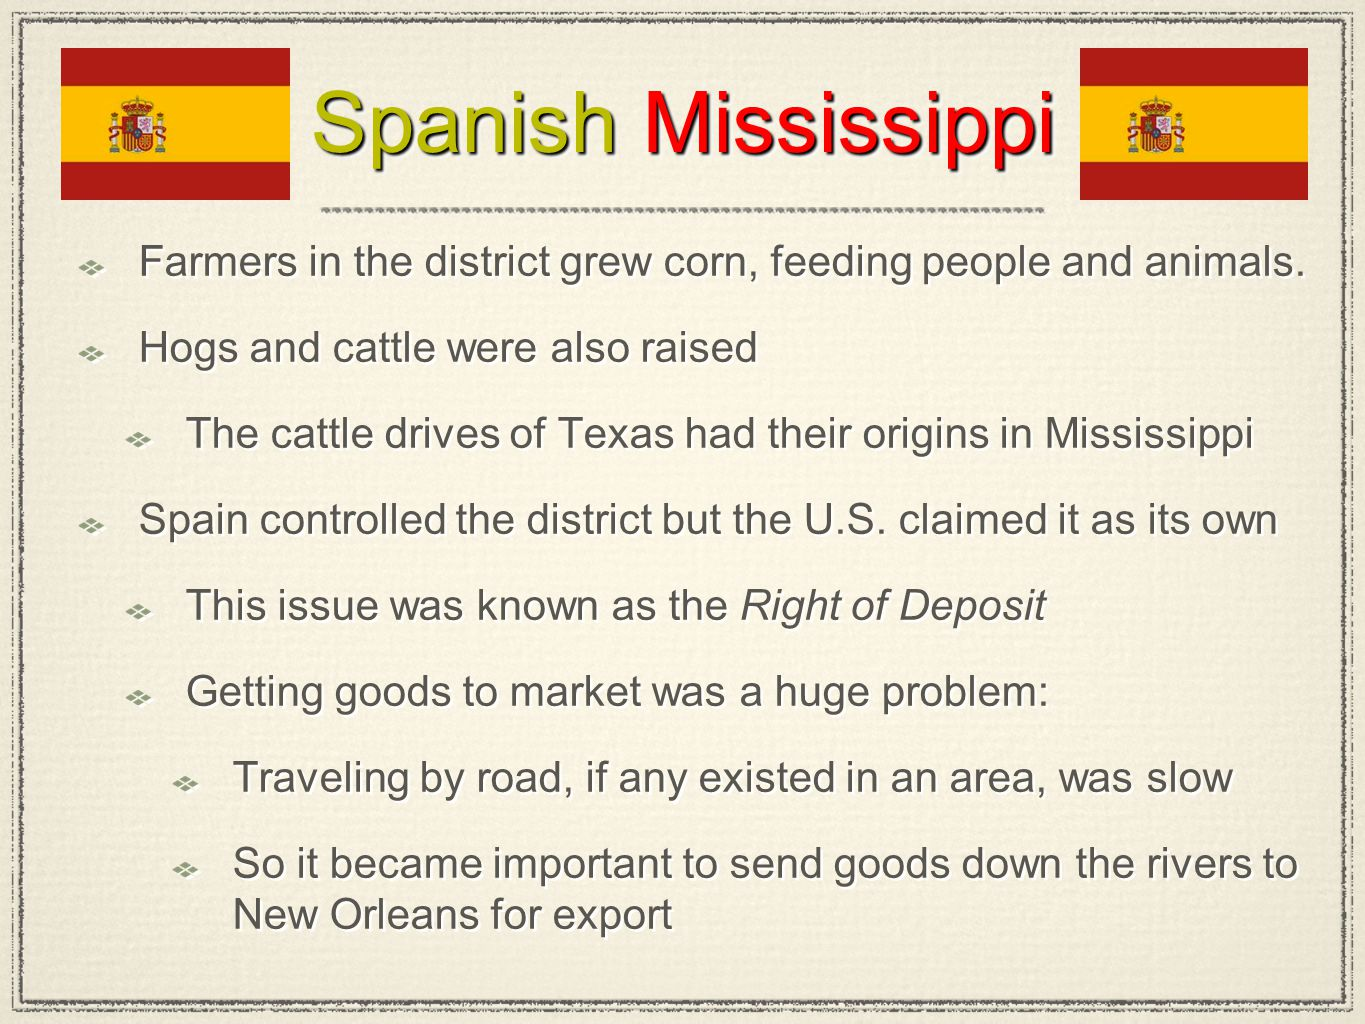 Spanish Mississippi Farmers in the district grew corn, feeding people and animals. Hogs and cattle were also raised.